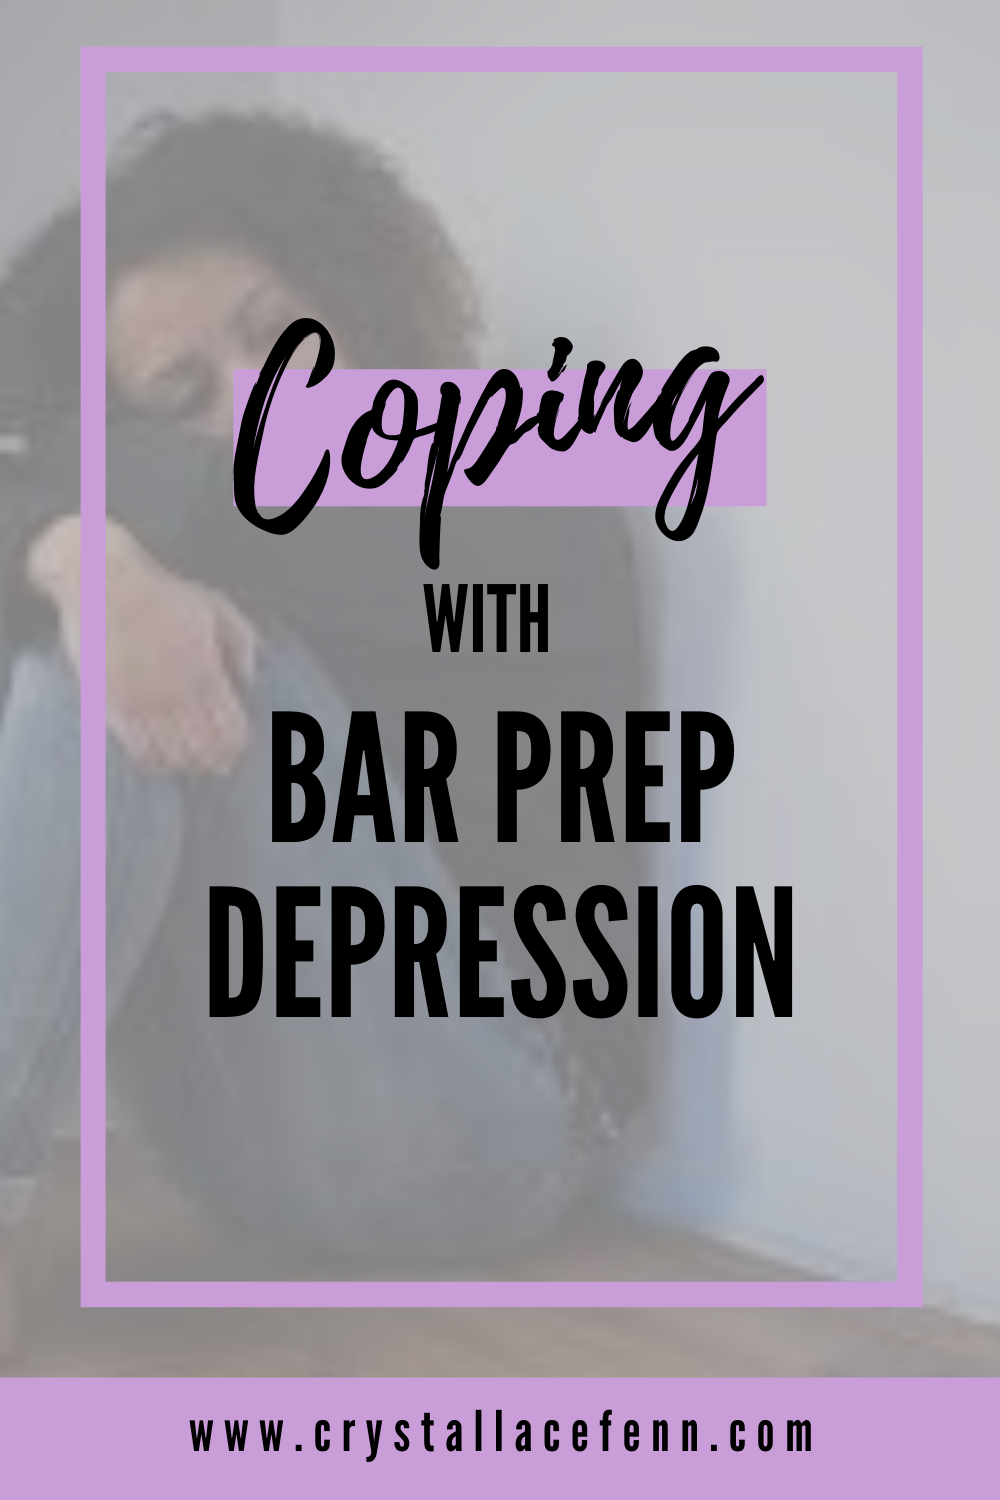 If You Are Coping With Bar Prep Depression Here Are Some Things You Can Try Now To Help